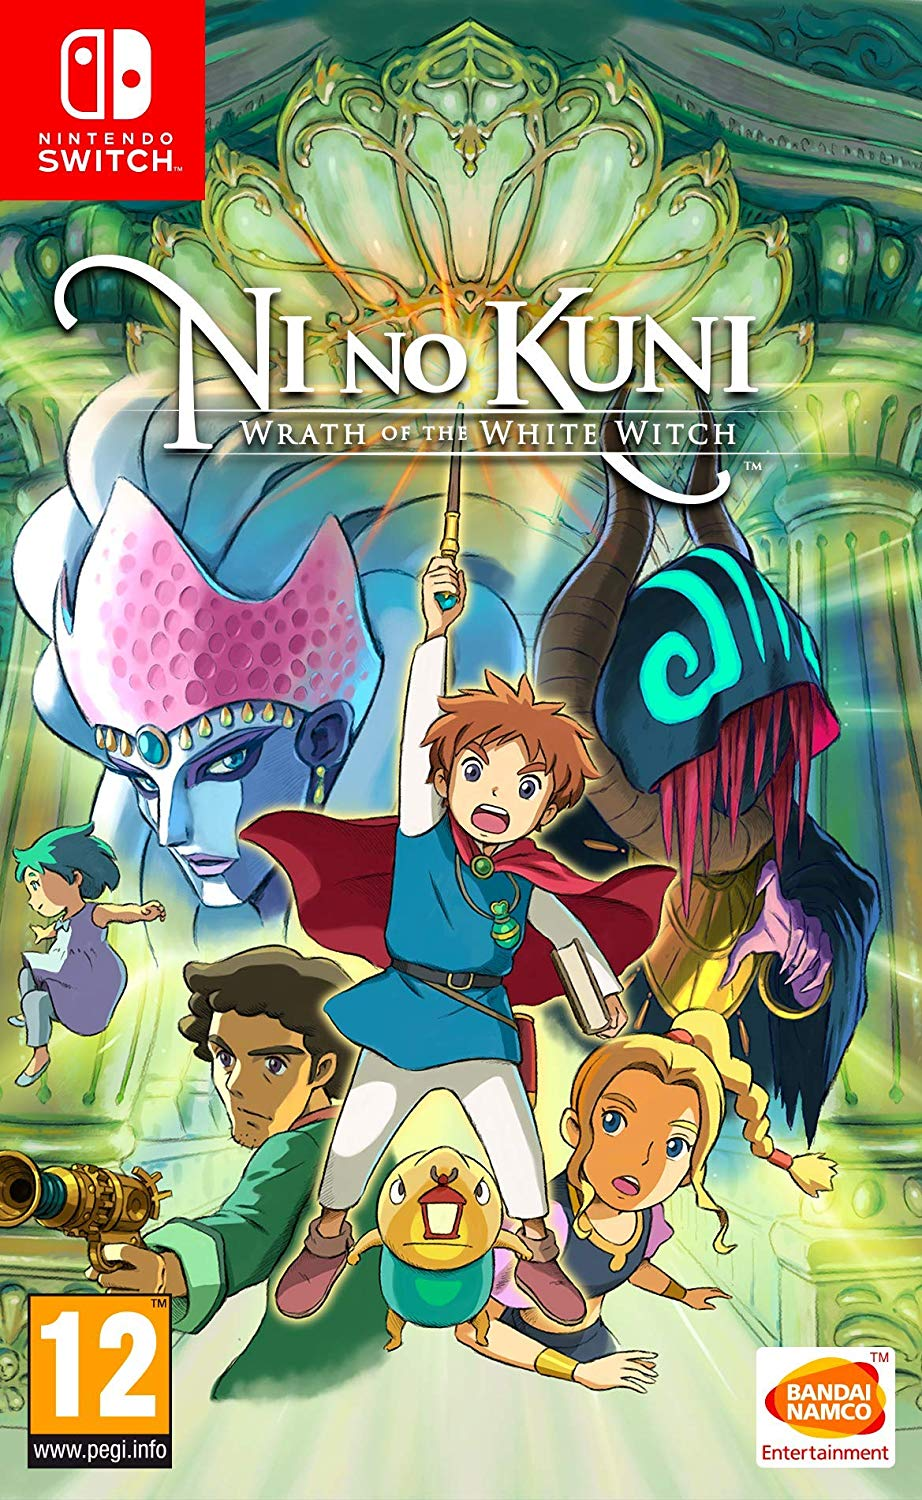 Cover art for Ni No Kuni